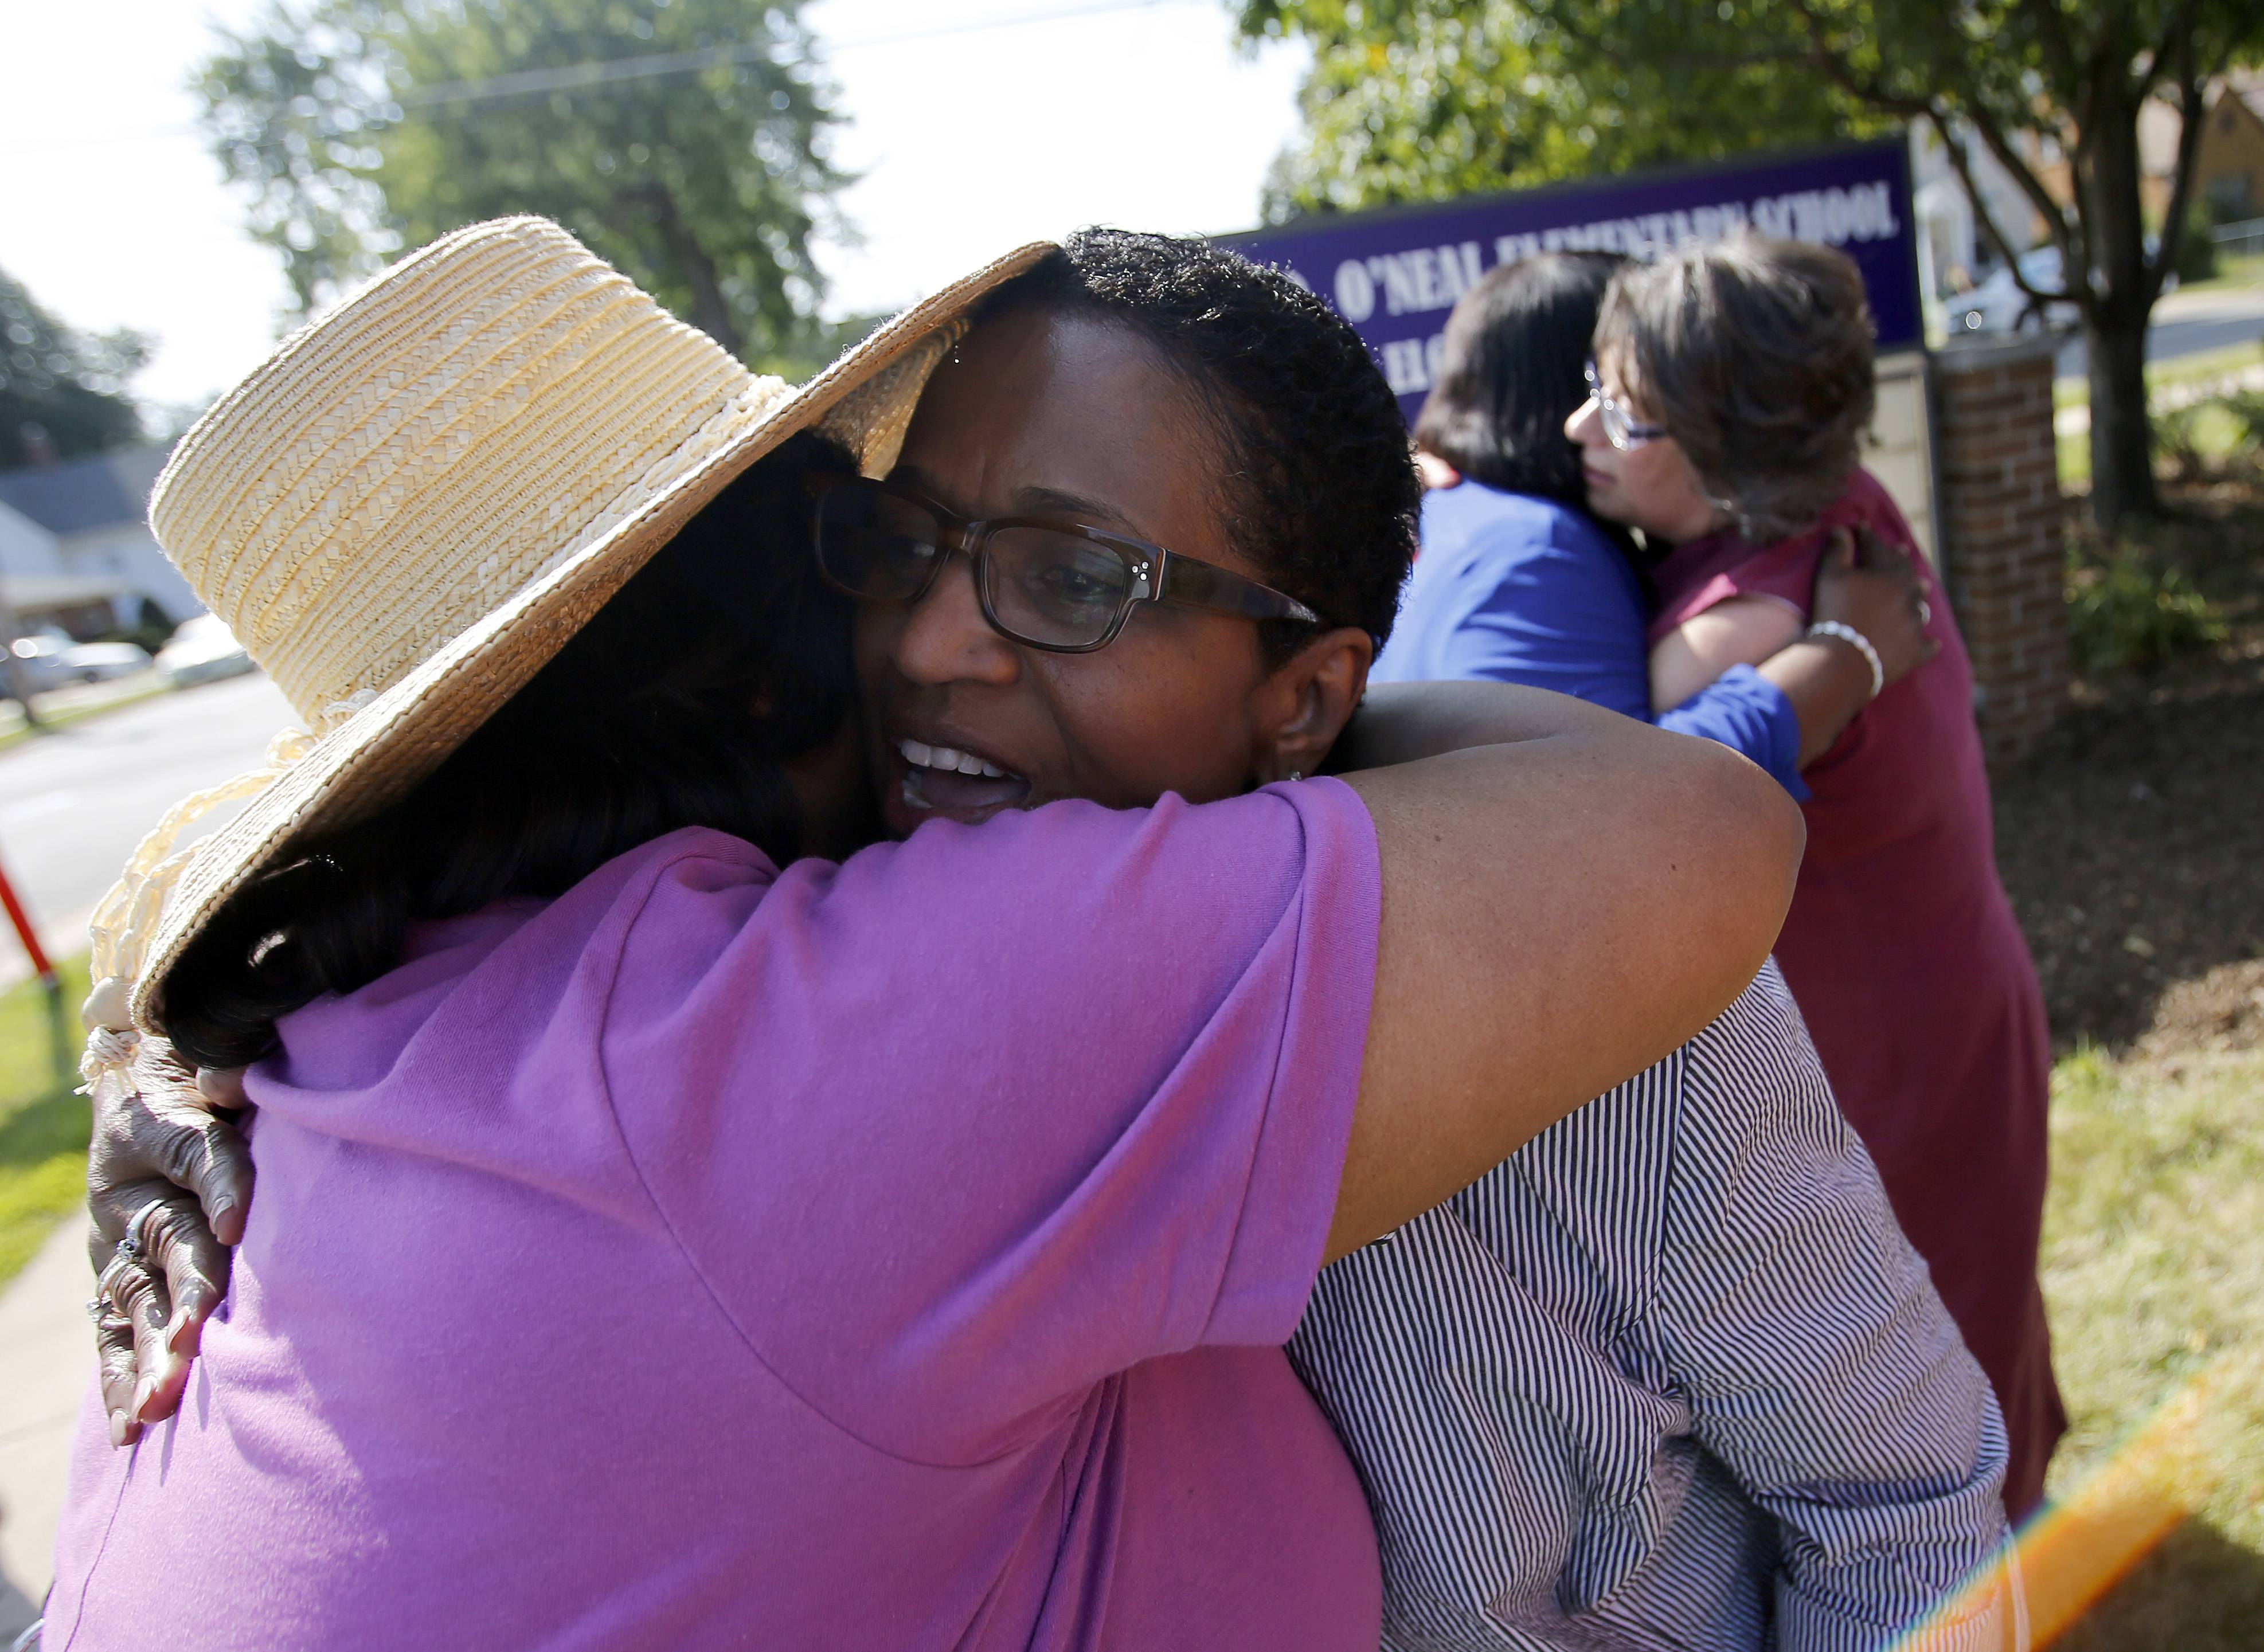 Carolyn O'Neal, wife of the late Ronald O'Neal, right, gets a hug from Delores Mayes-Howard after Sheridan Elementary School was renamed Ronald D. O'Neal Elementary School Friday in Elgin.